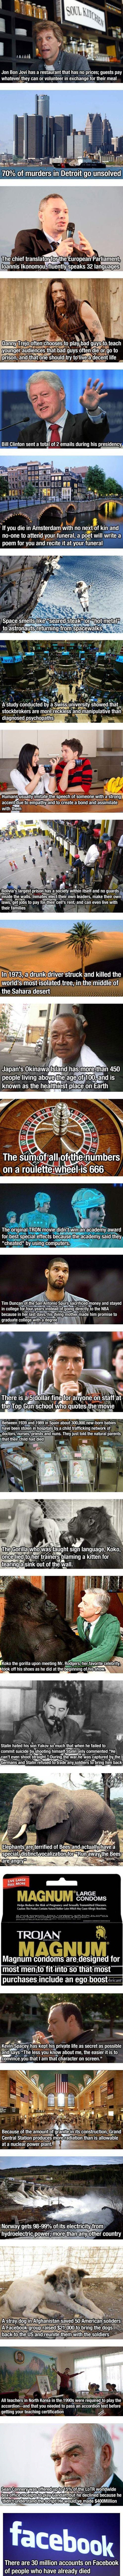 30 Random Surprising Facts. Huh, I didn't know that about Tim Duncan. It's really sweet.